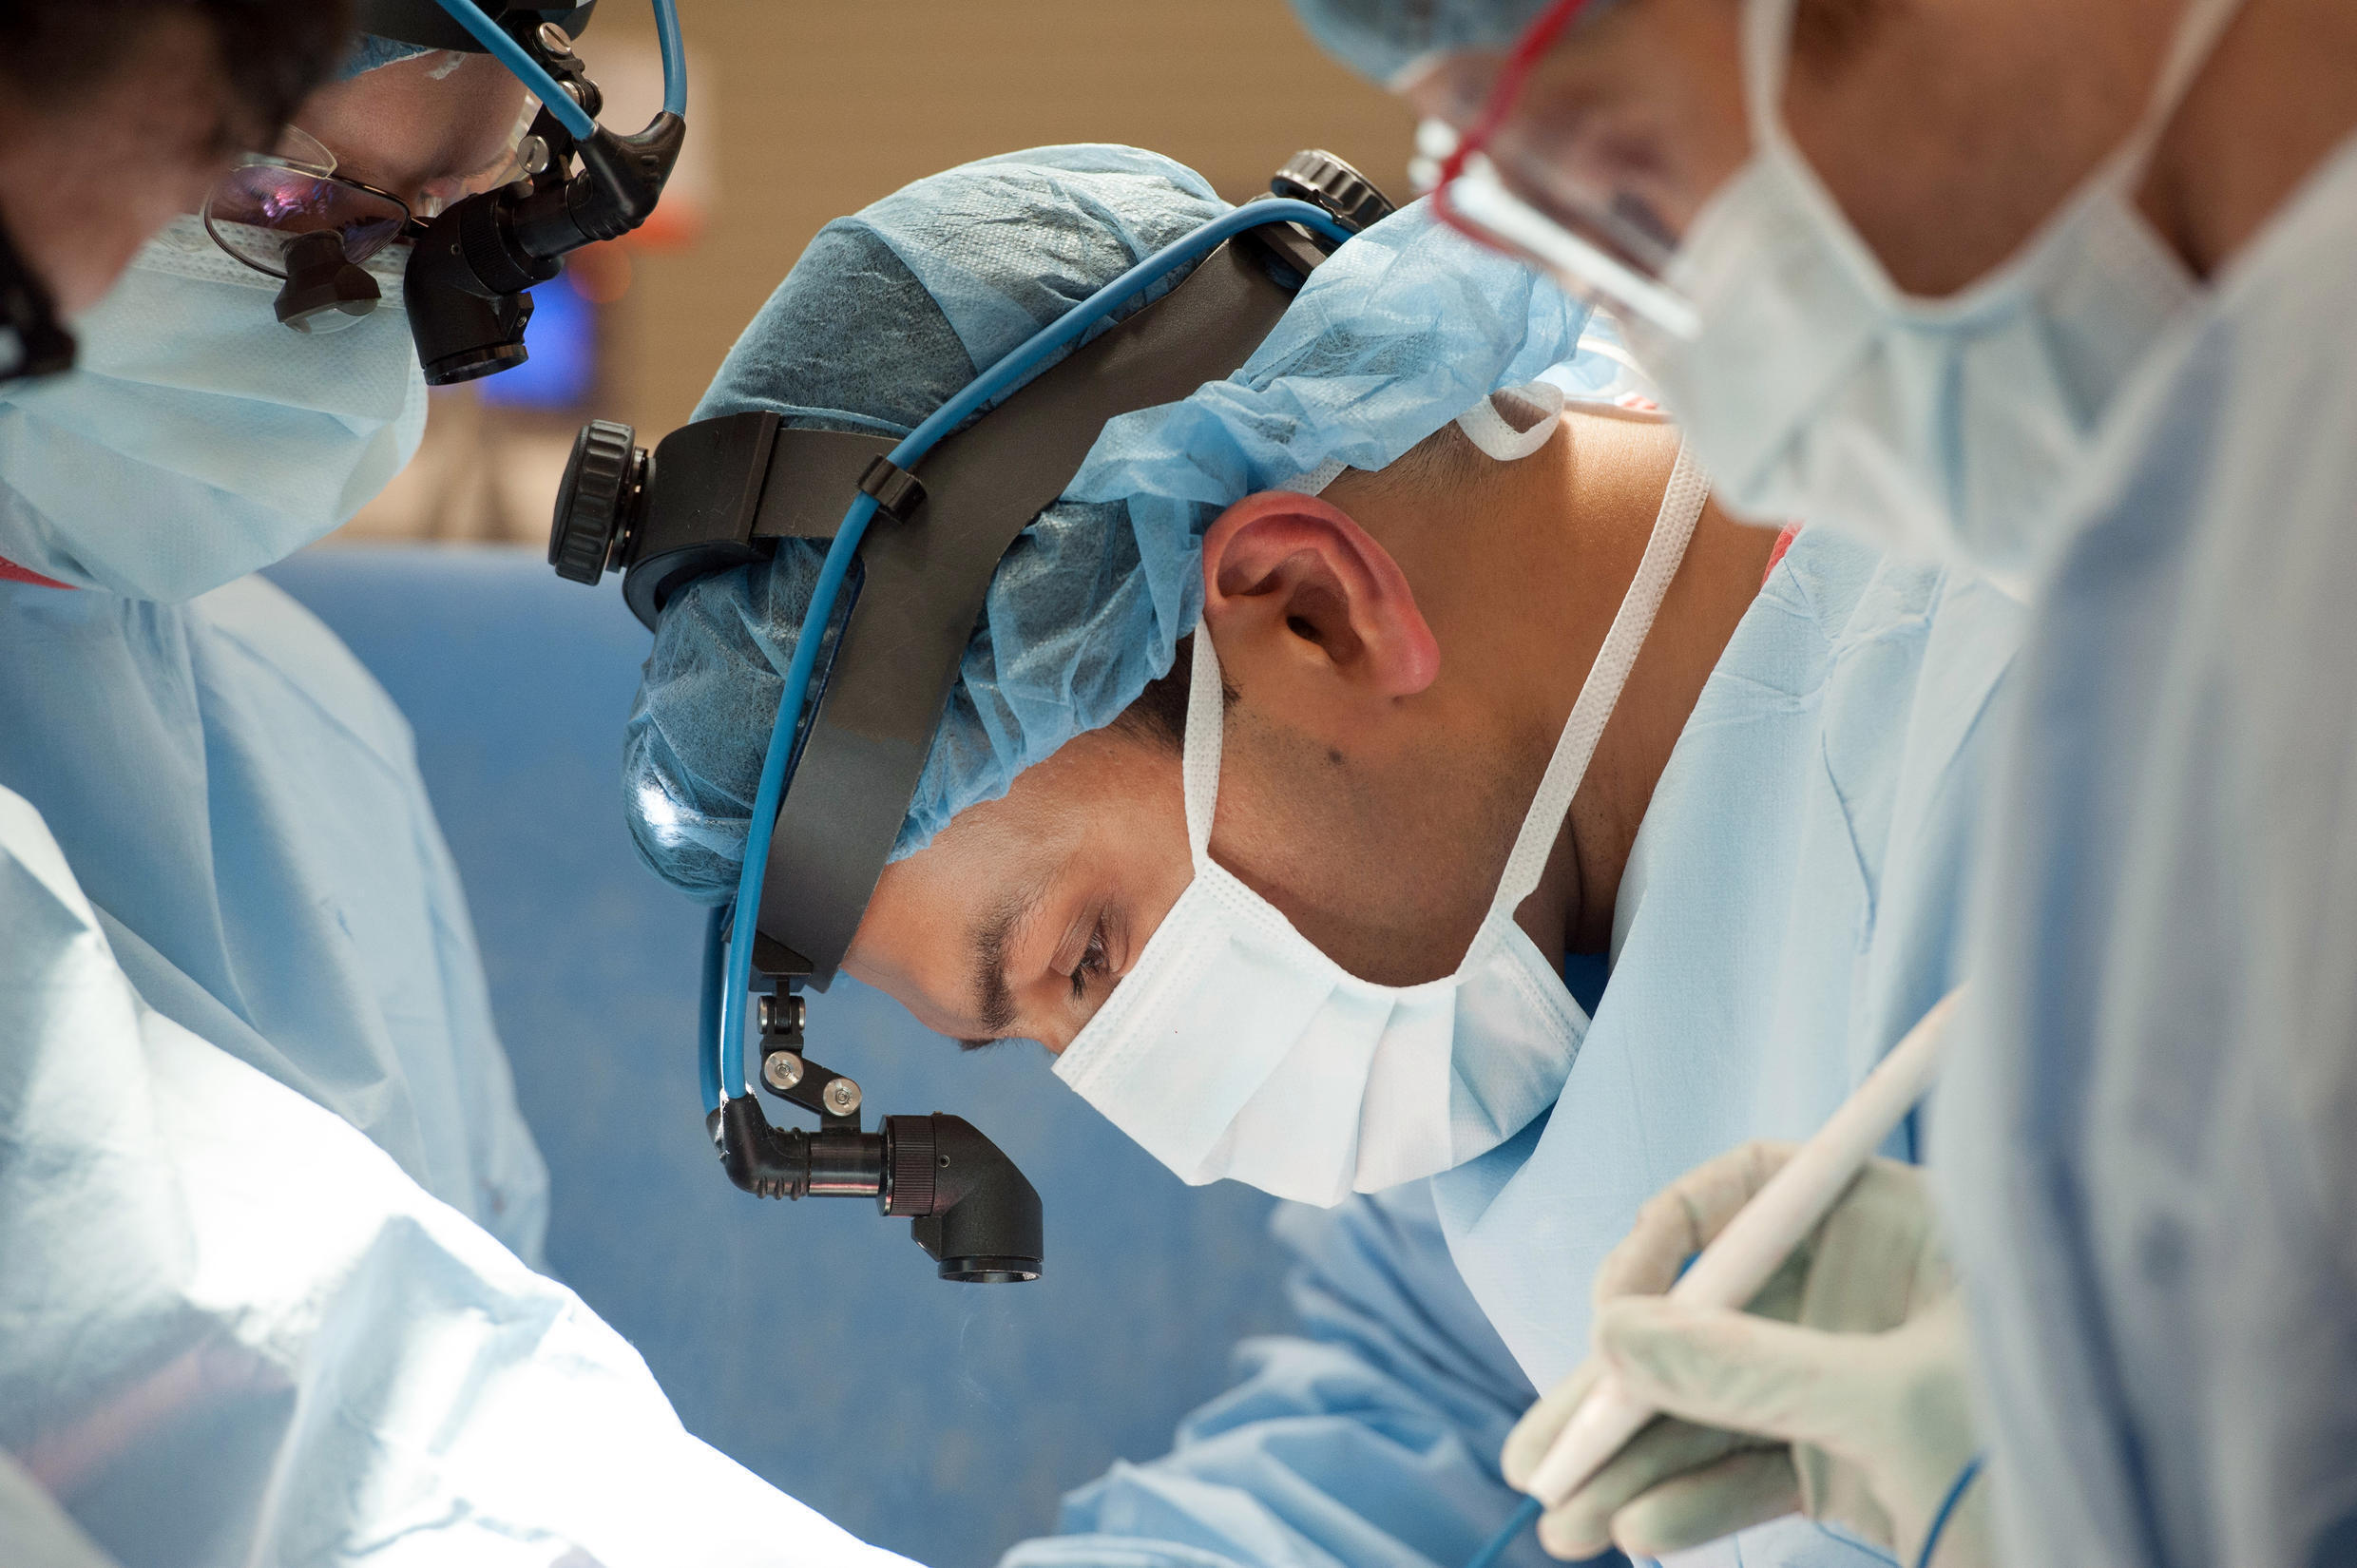 This image released by Northwestern Medicine, shows transplant surgeon, Ankit Bharat, at Northwestern Memorial Hospital in Chicago, where surgeons have performed a double-lung transplant on a COVID-19 patient